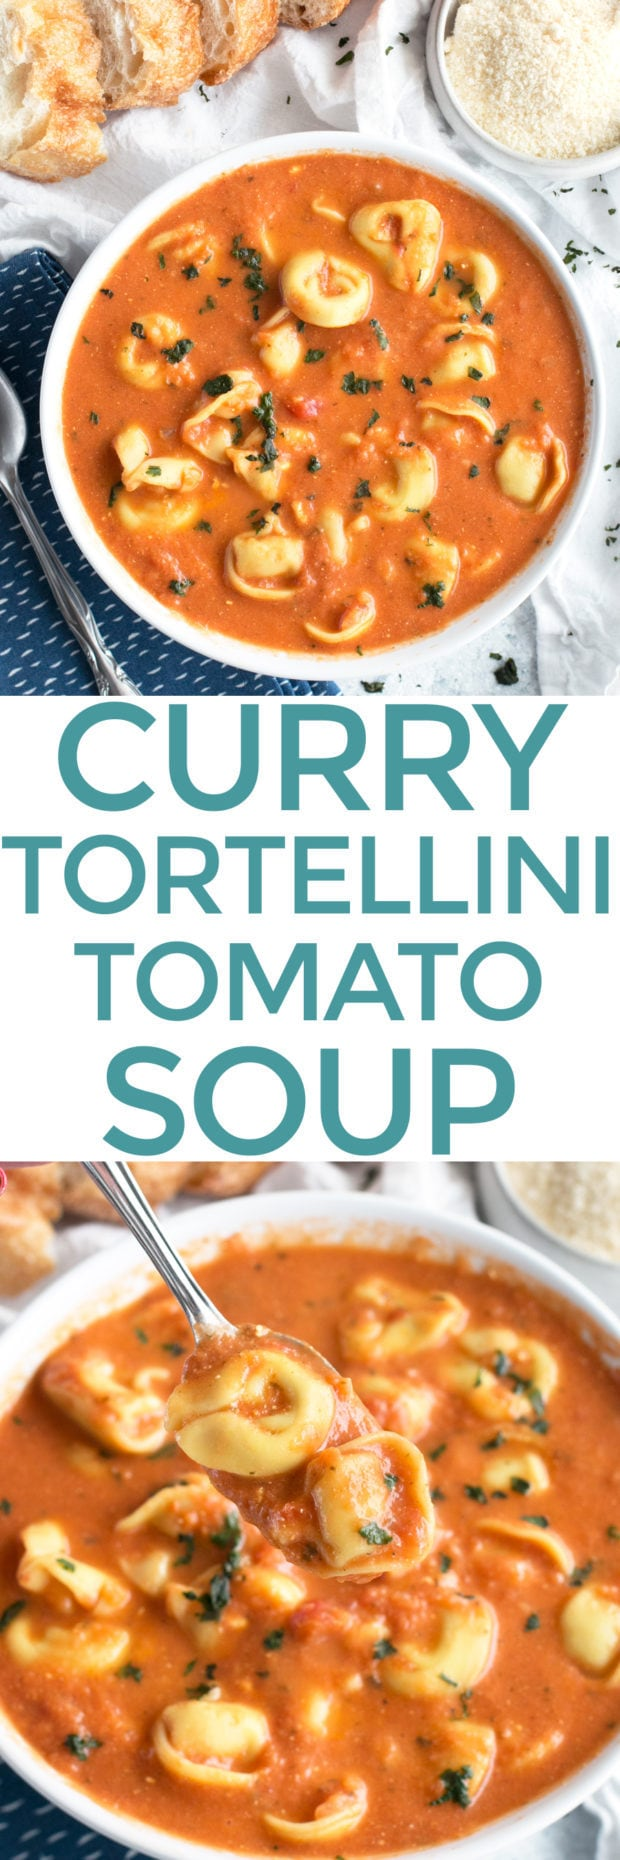 Curry Tomato Tortellini Soup